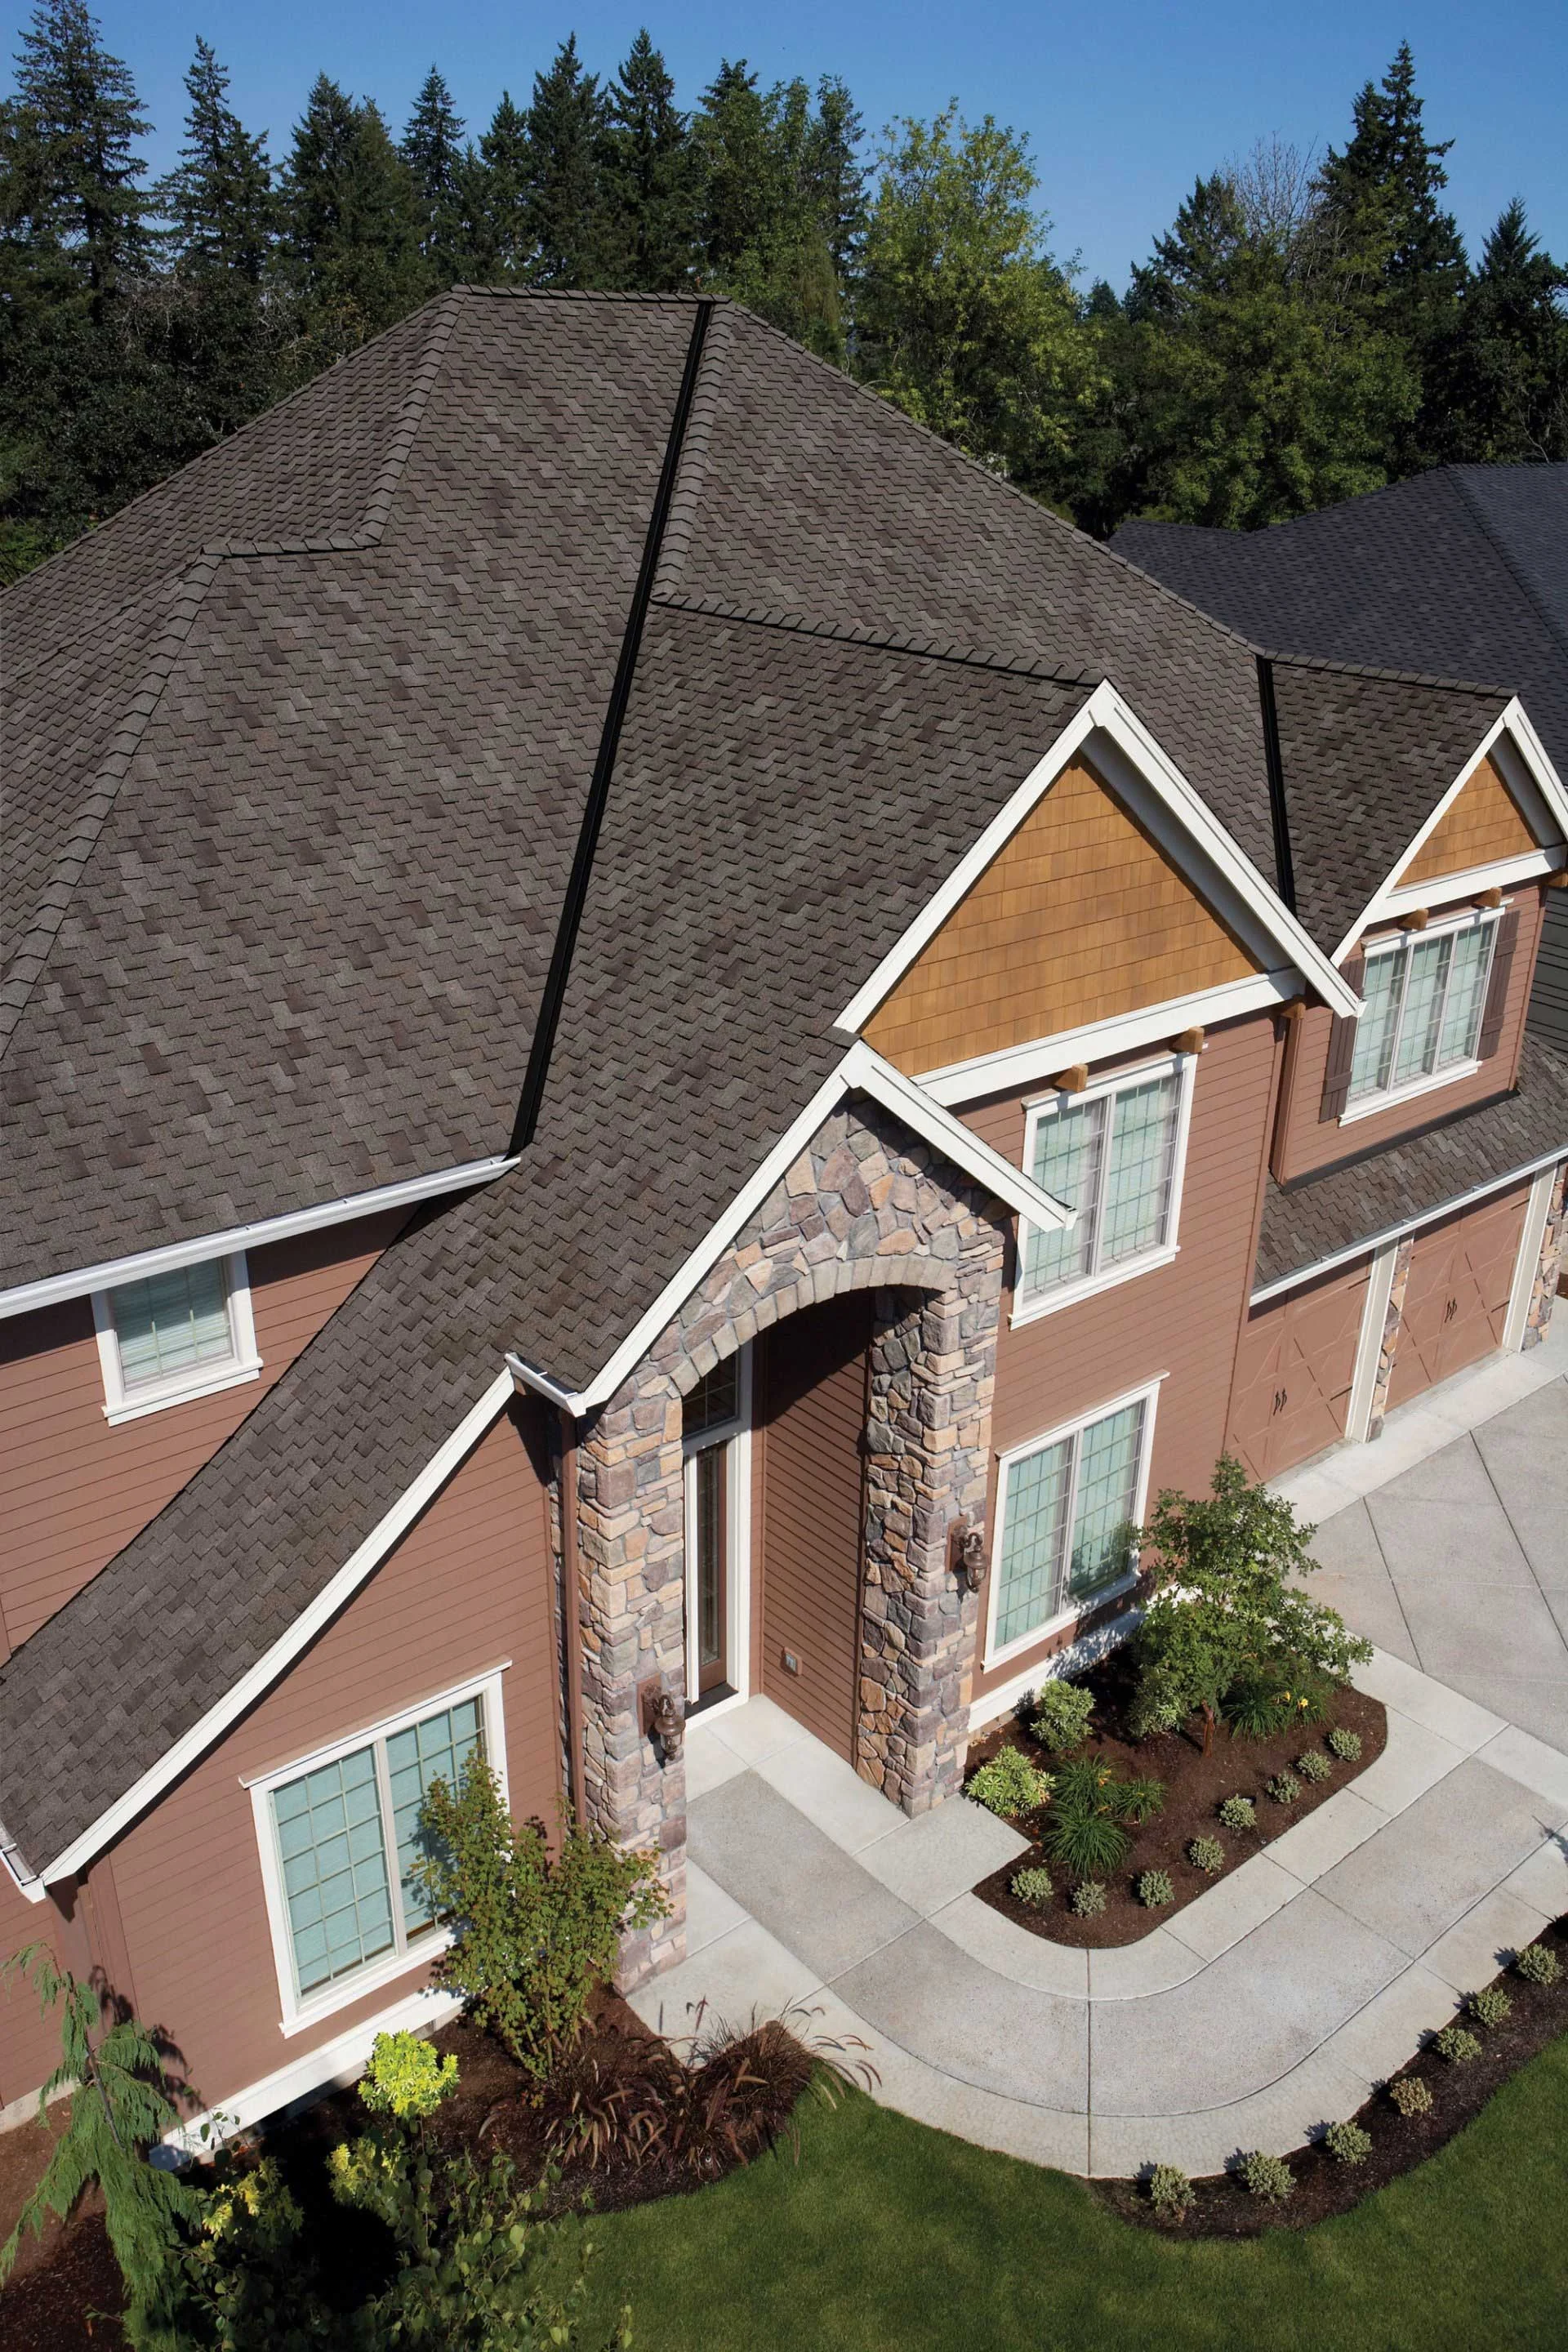 Pacific Pride Roofing One Stop Solution For All Your Roofing Problems In Kirkland Https Pacificprideroofing Com Gallery R Roof Problems Residential Roofing